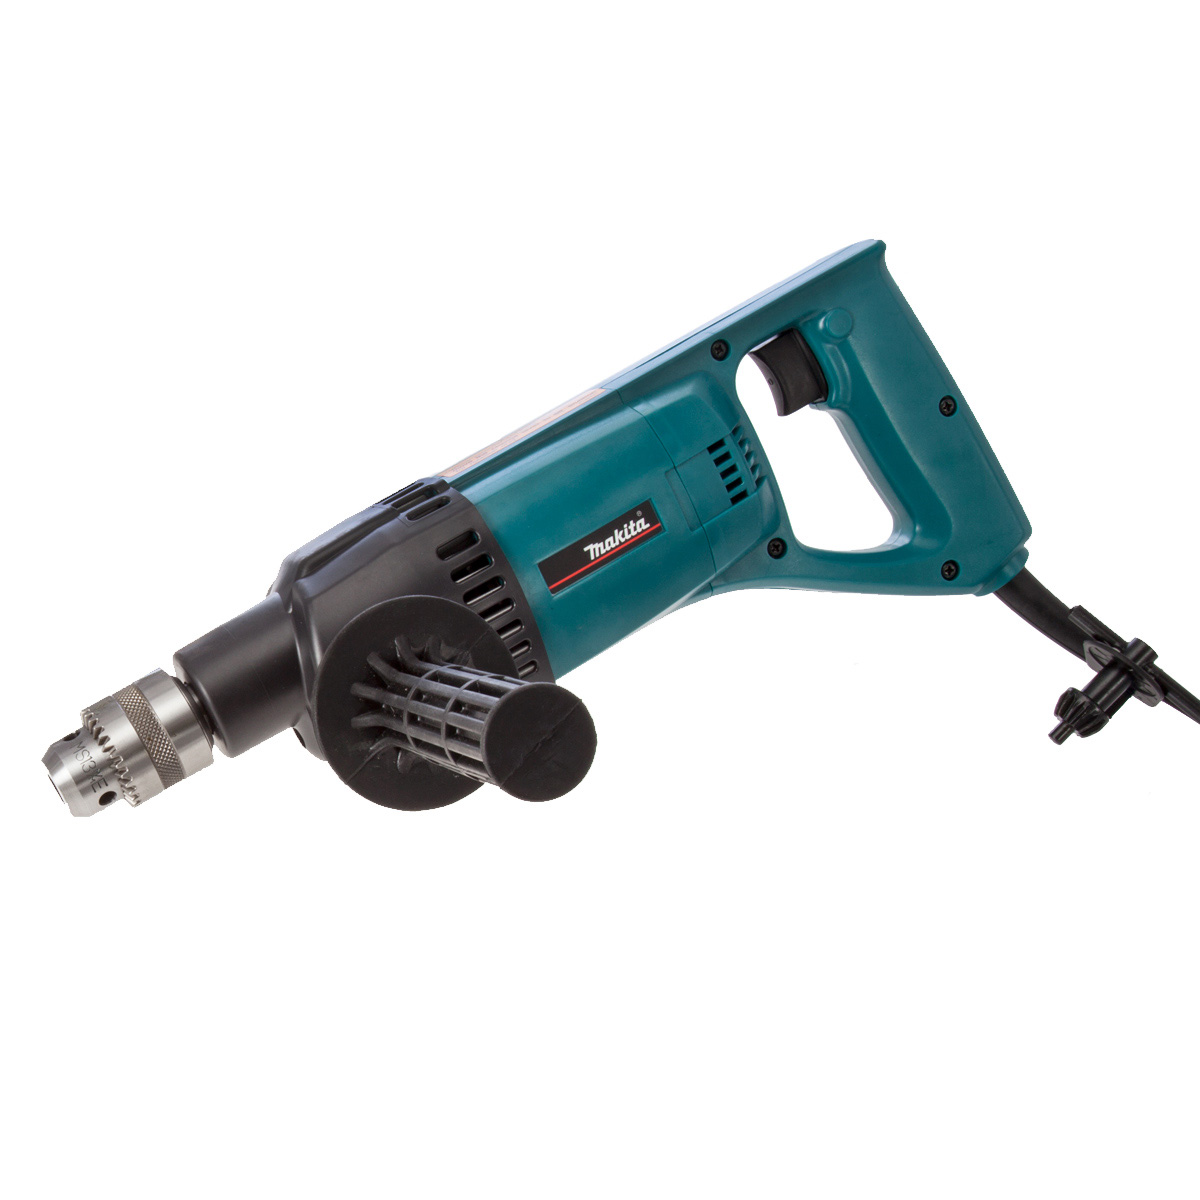 MAKITA 8406 13MM DIAMOND CORE DRILL 240V